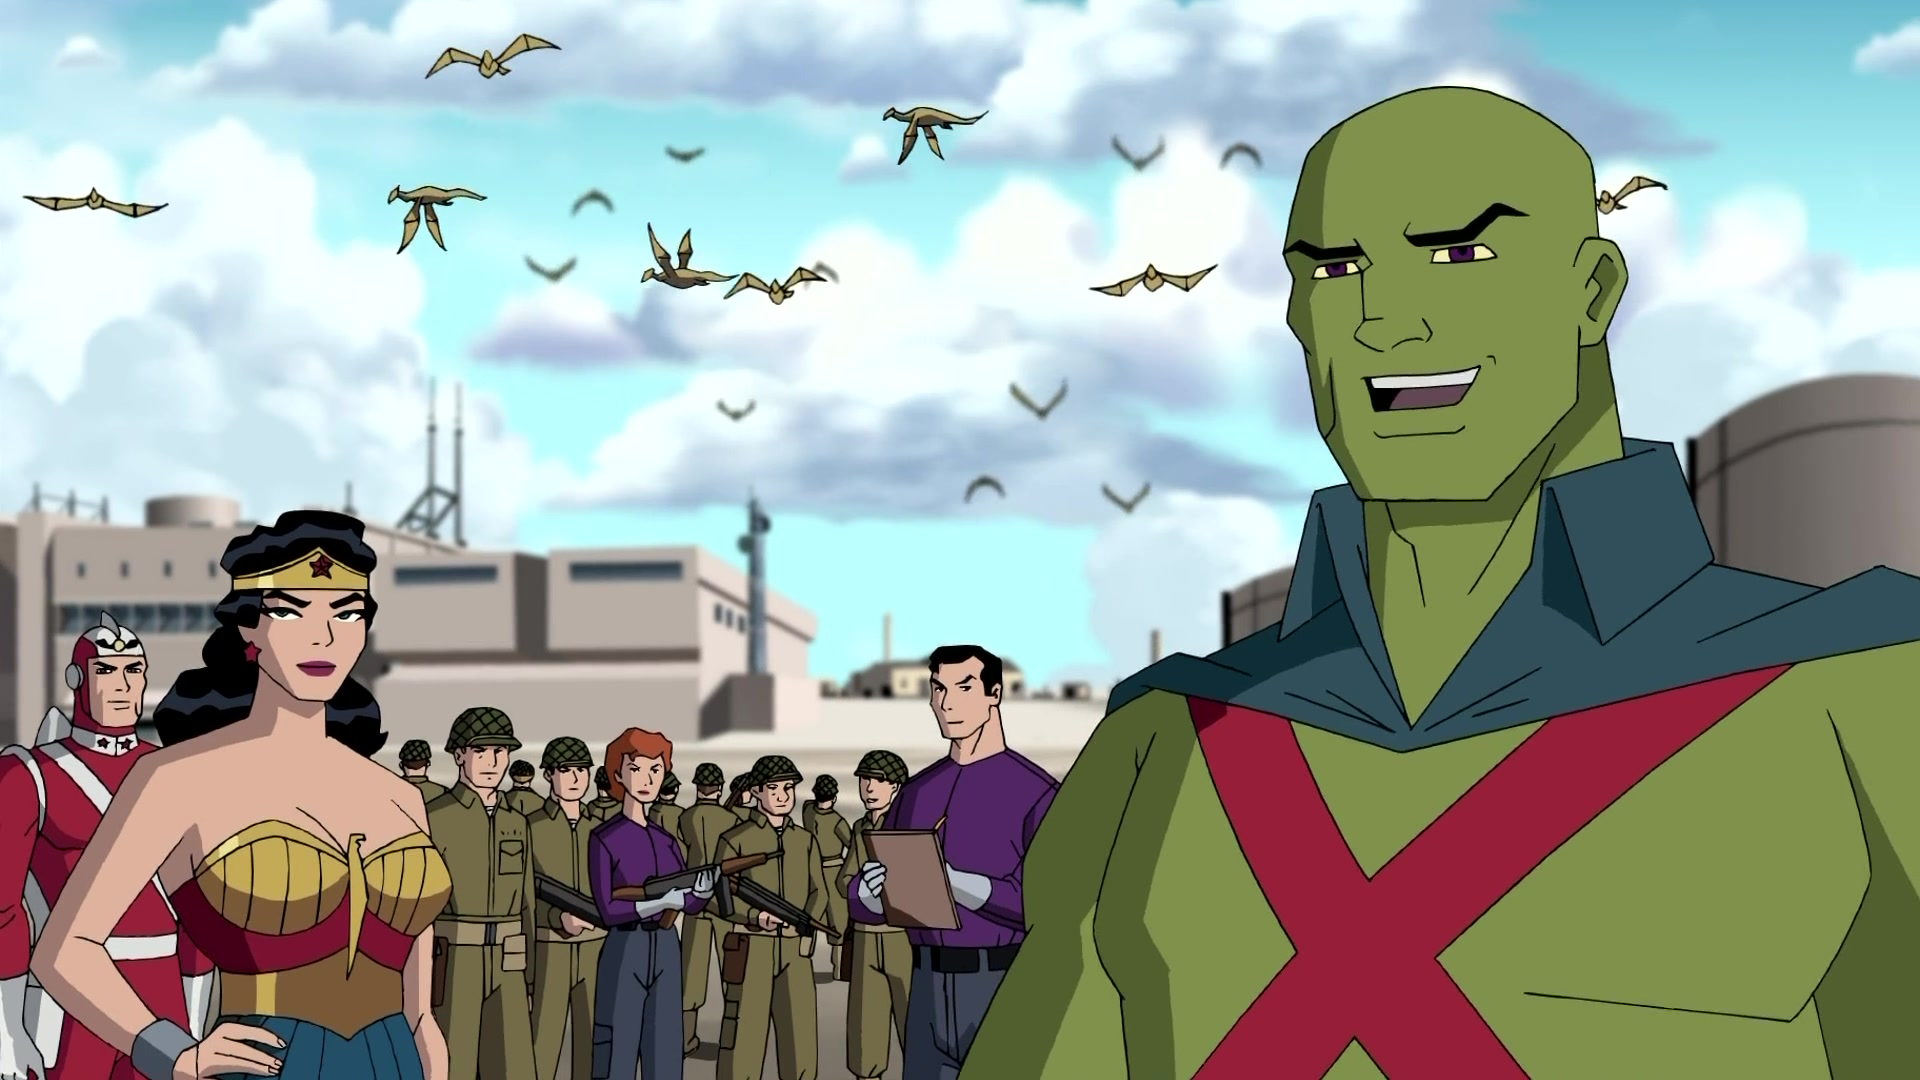 J'onn J'onnz the Martian Manhunter, Adam Strange and Wonder Woman in Justice League The New Frontier (2008)